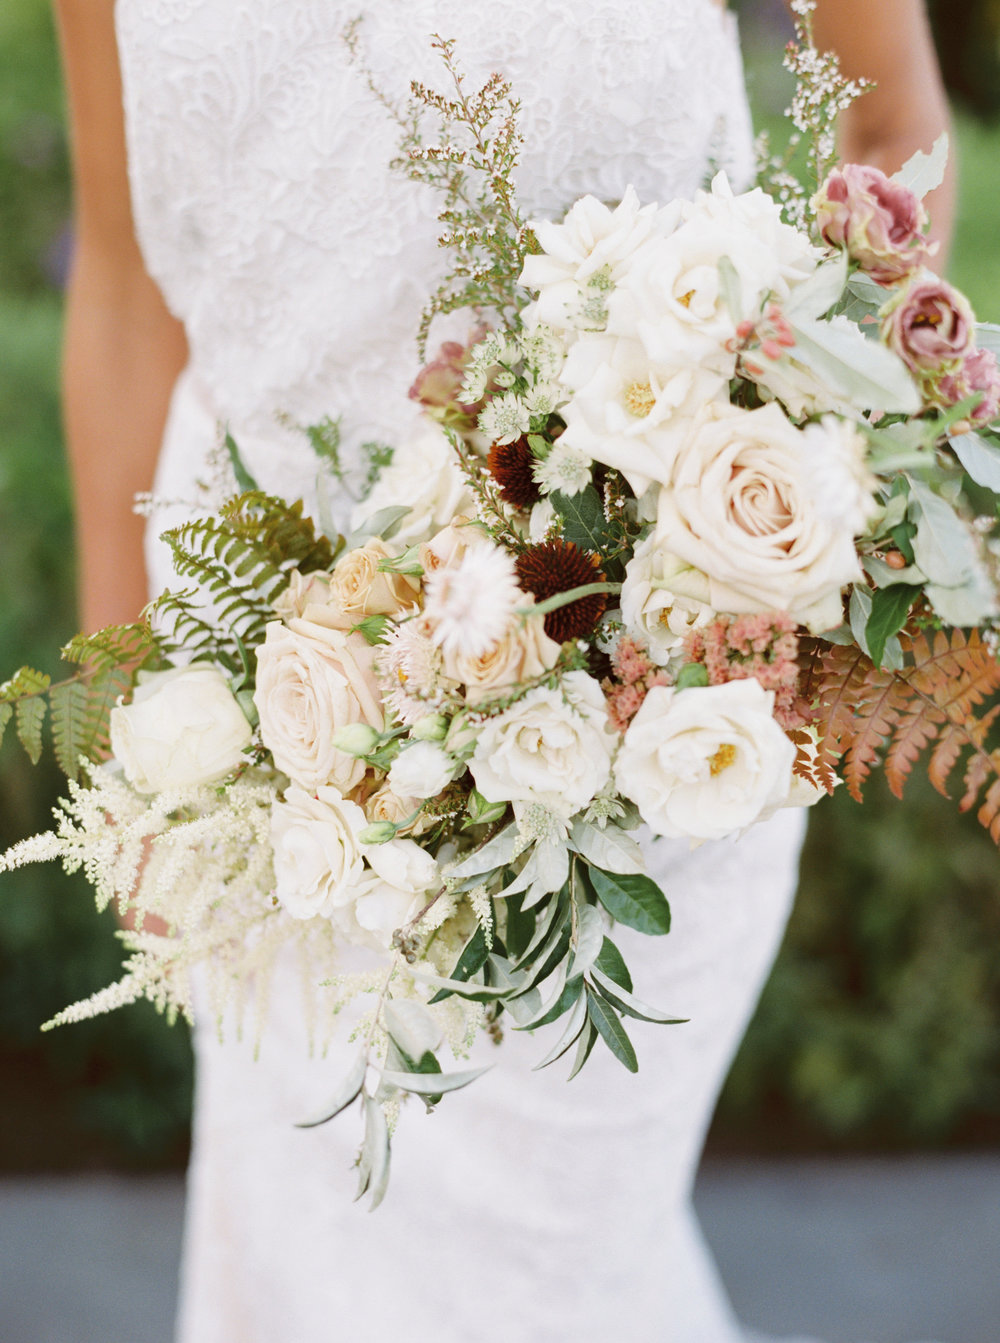 Wild Green Yonder Natural Organic Bouquet for Early Mountain Vineyard Wedding